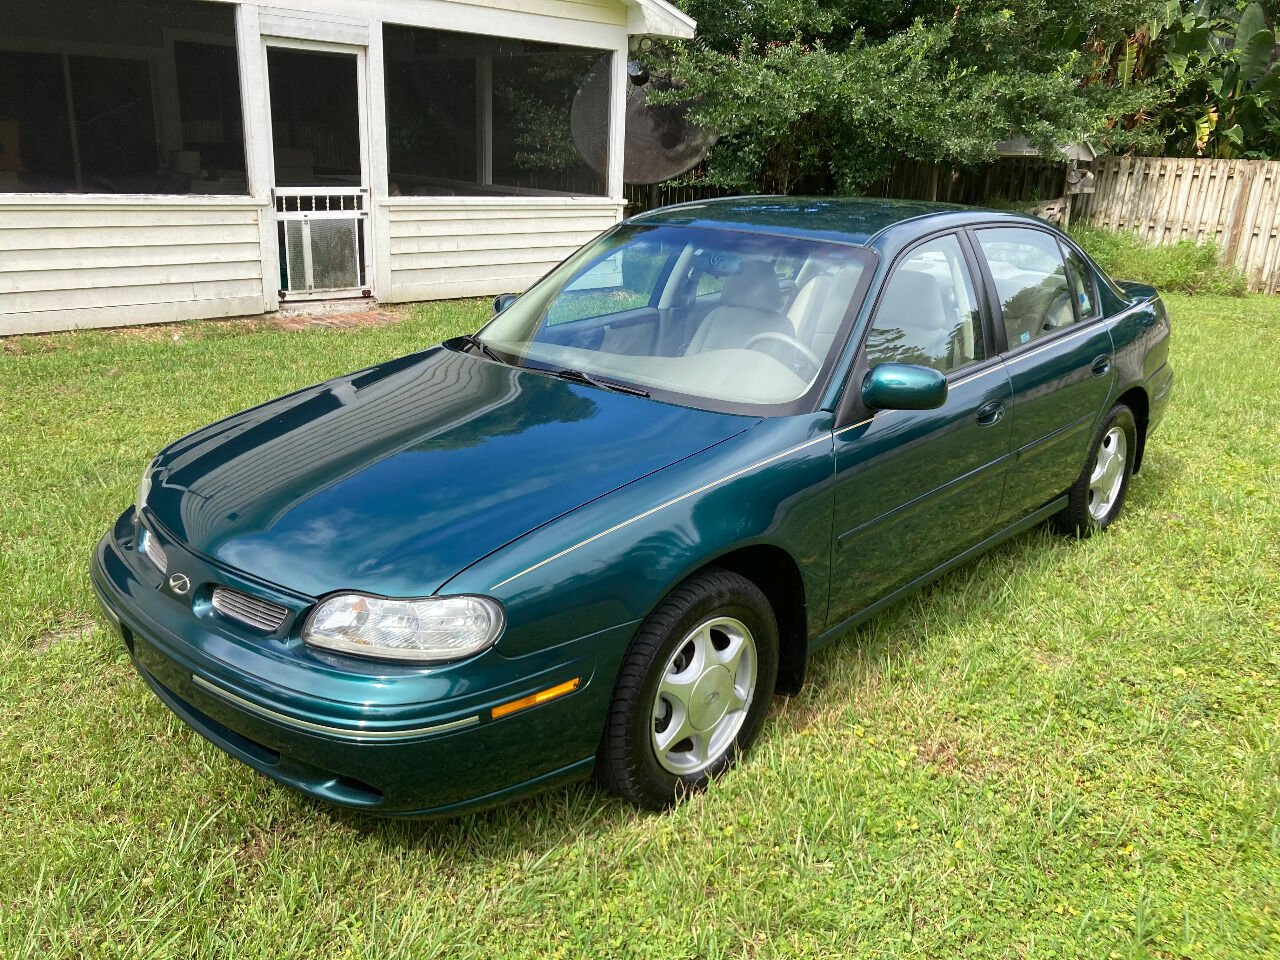 used 1999 oldsmobile cutlass for sale carsforsale com used 1999 oldsmobile cutlass for sale